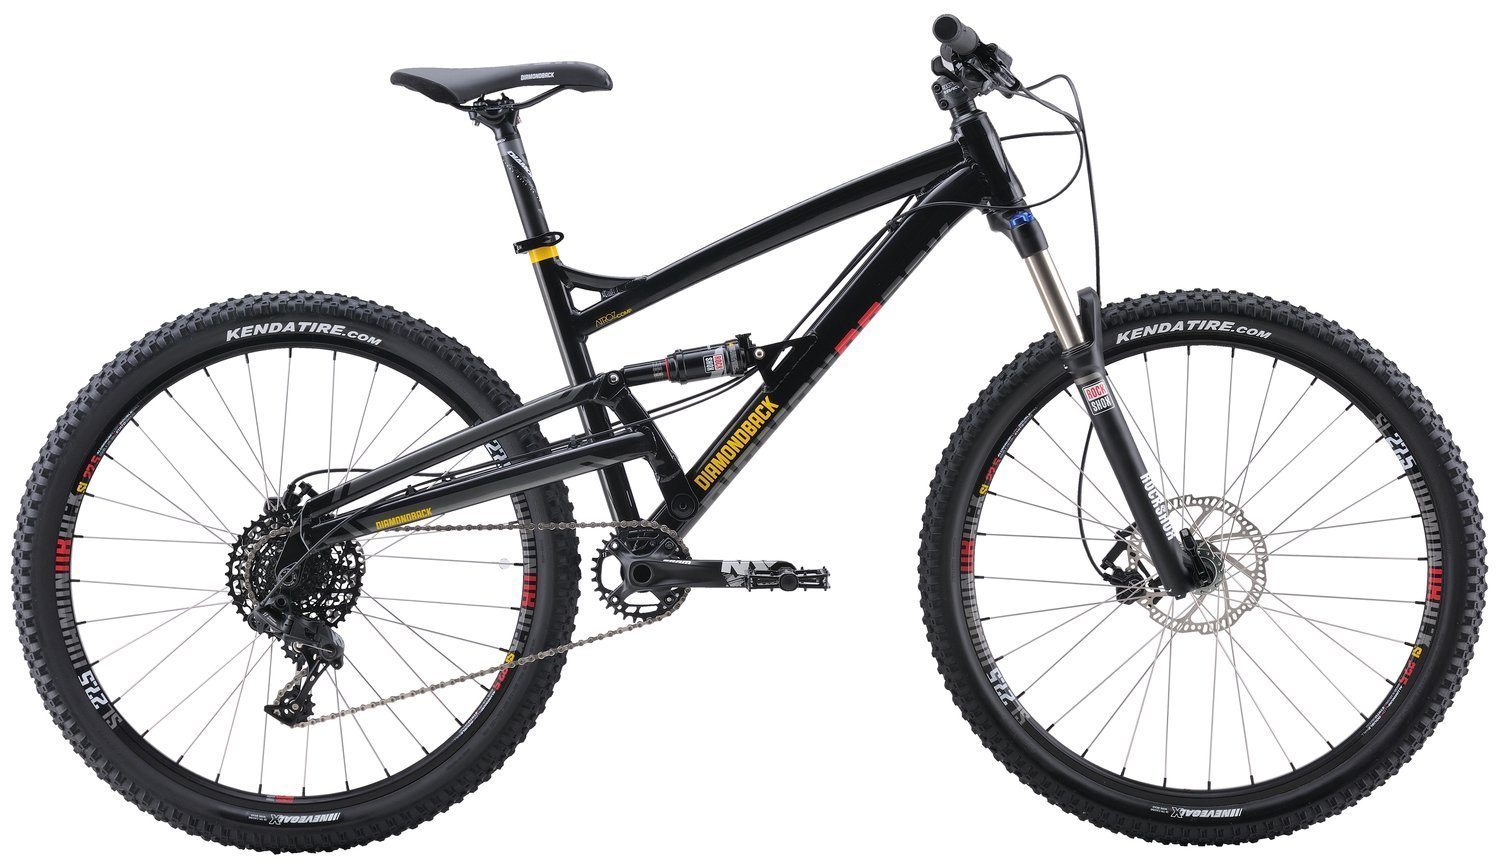 Diamondback Atroz Comp Full Suspension Mountain Bike Review